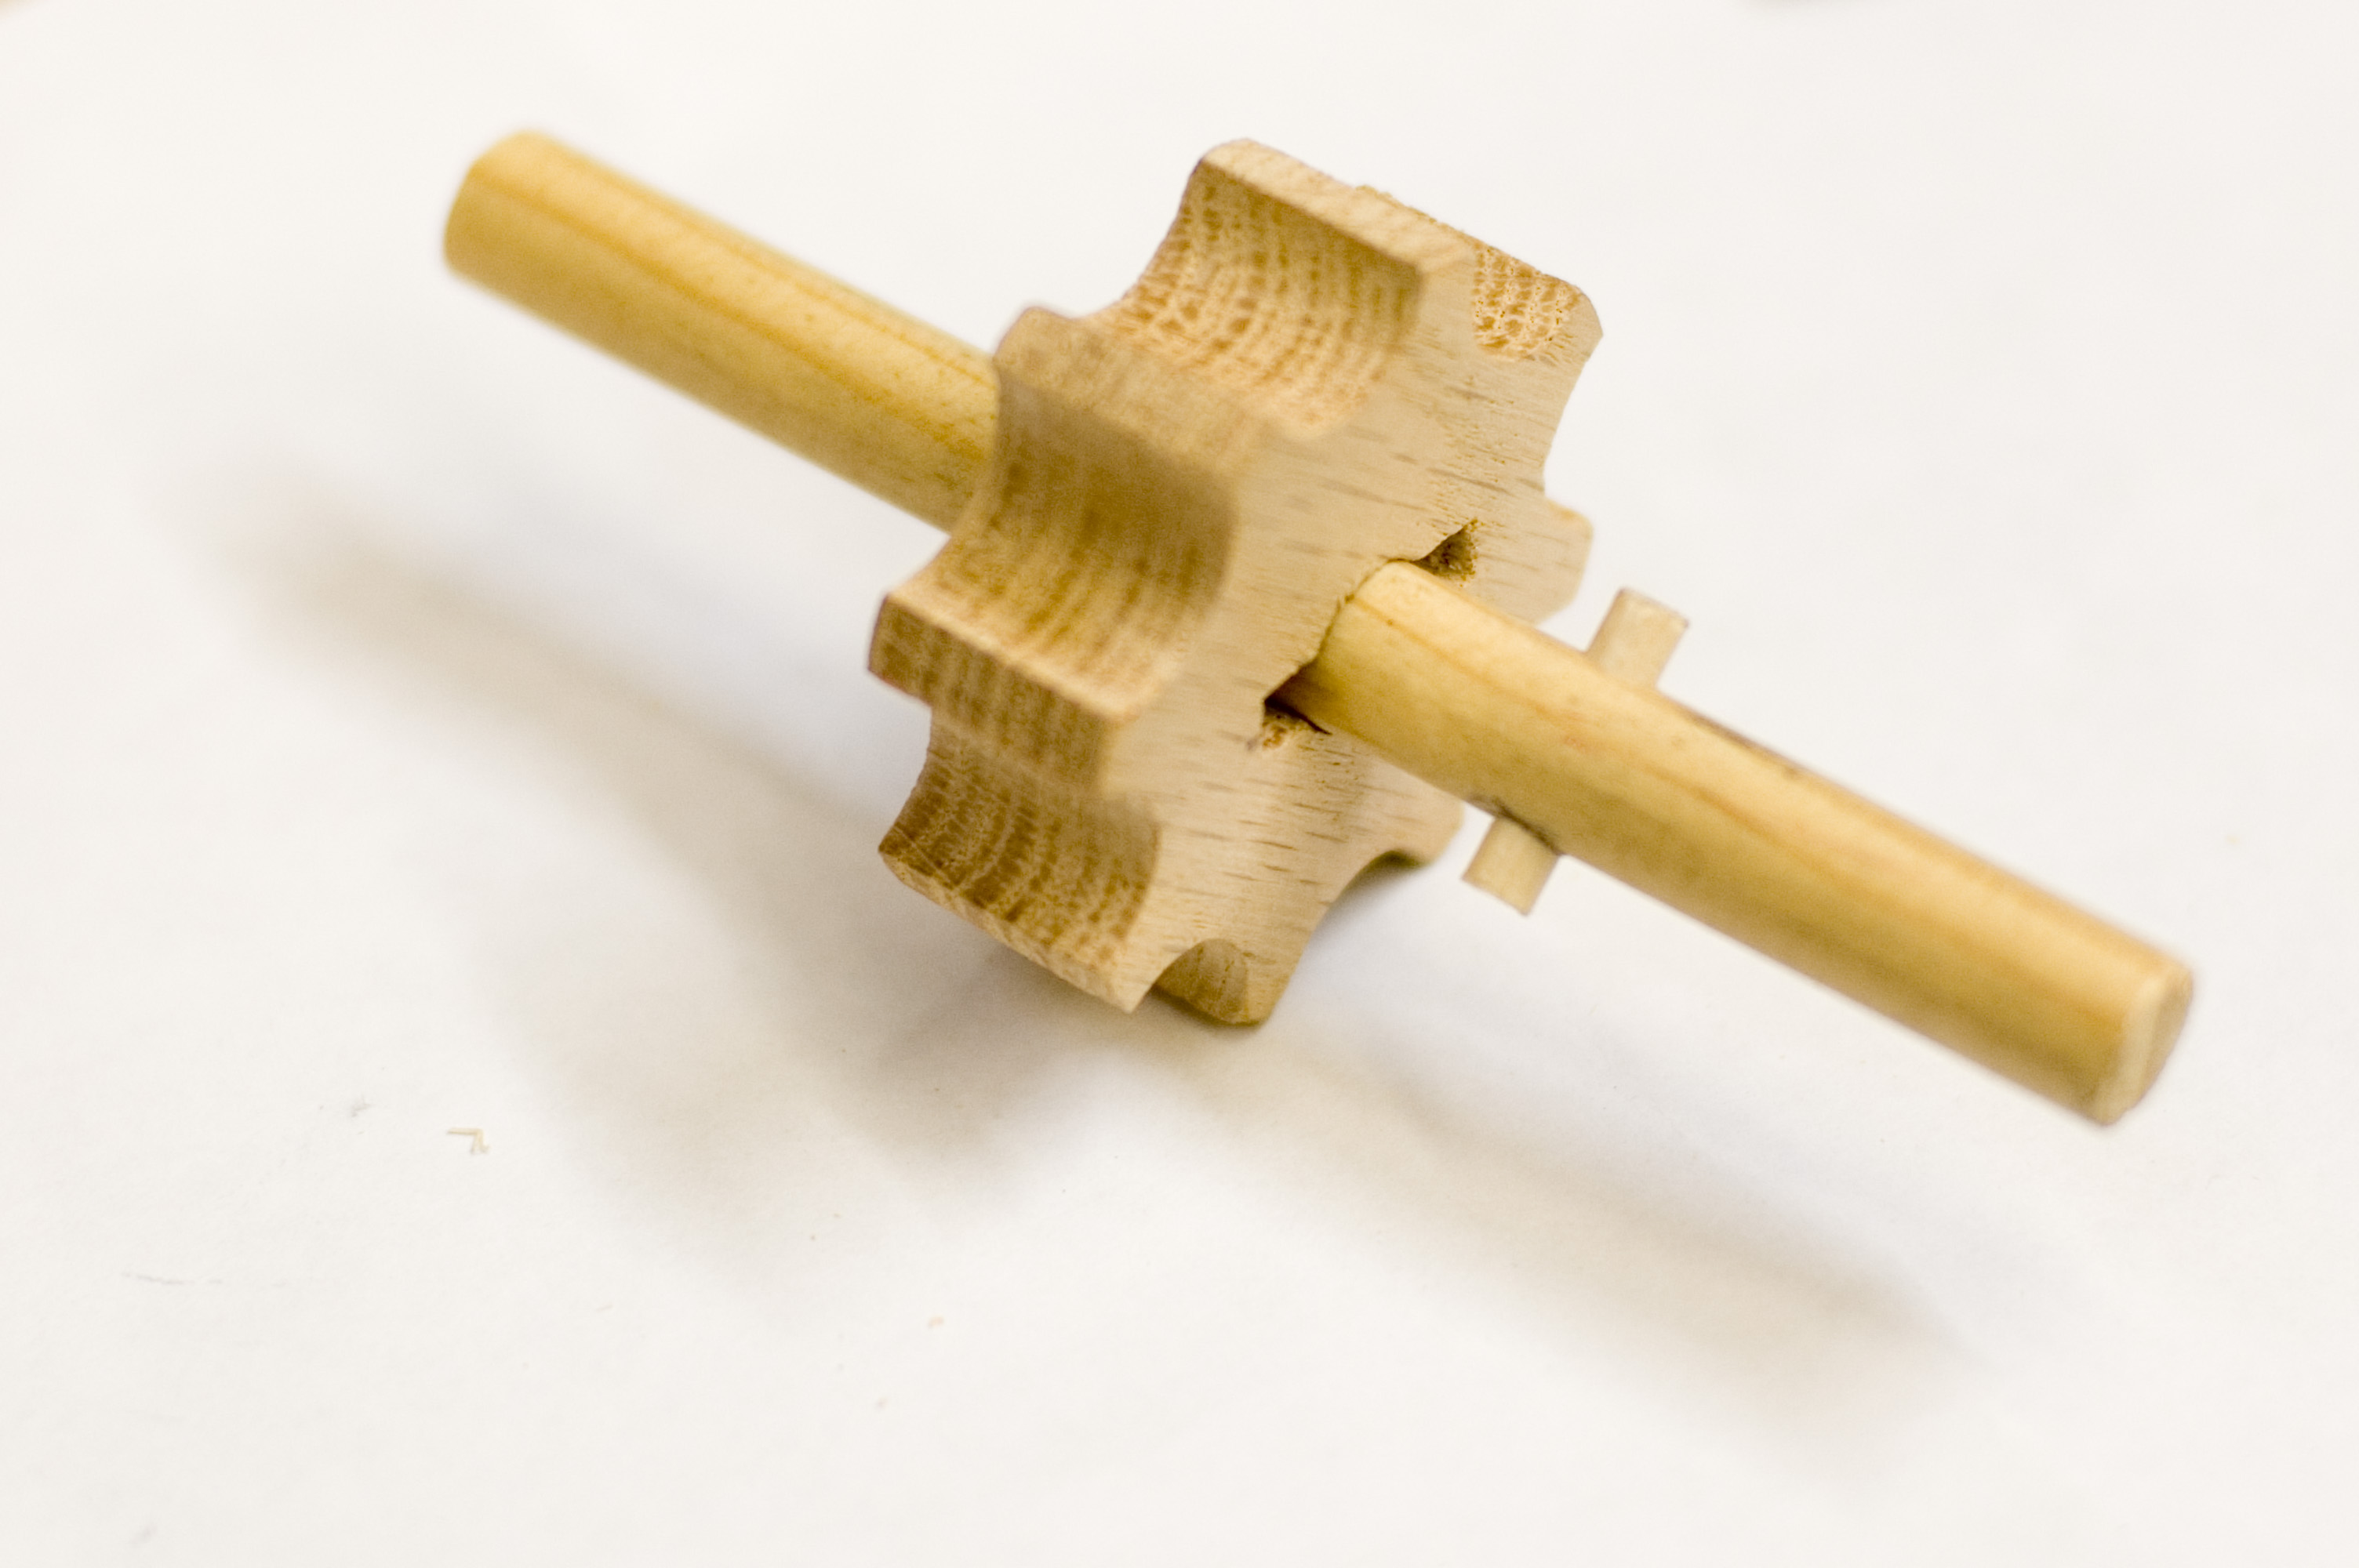 Picture of Attach the Gear to the Dowel